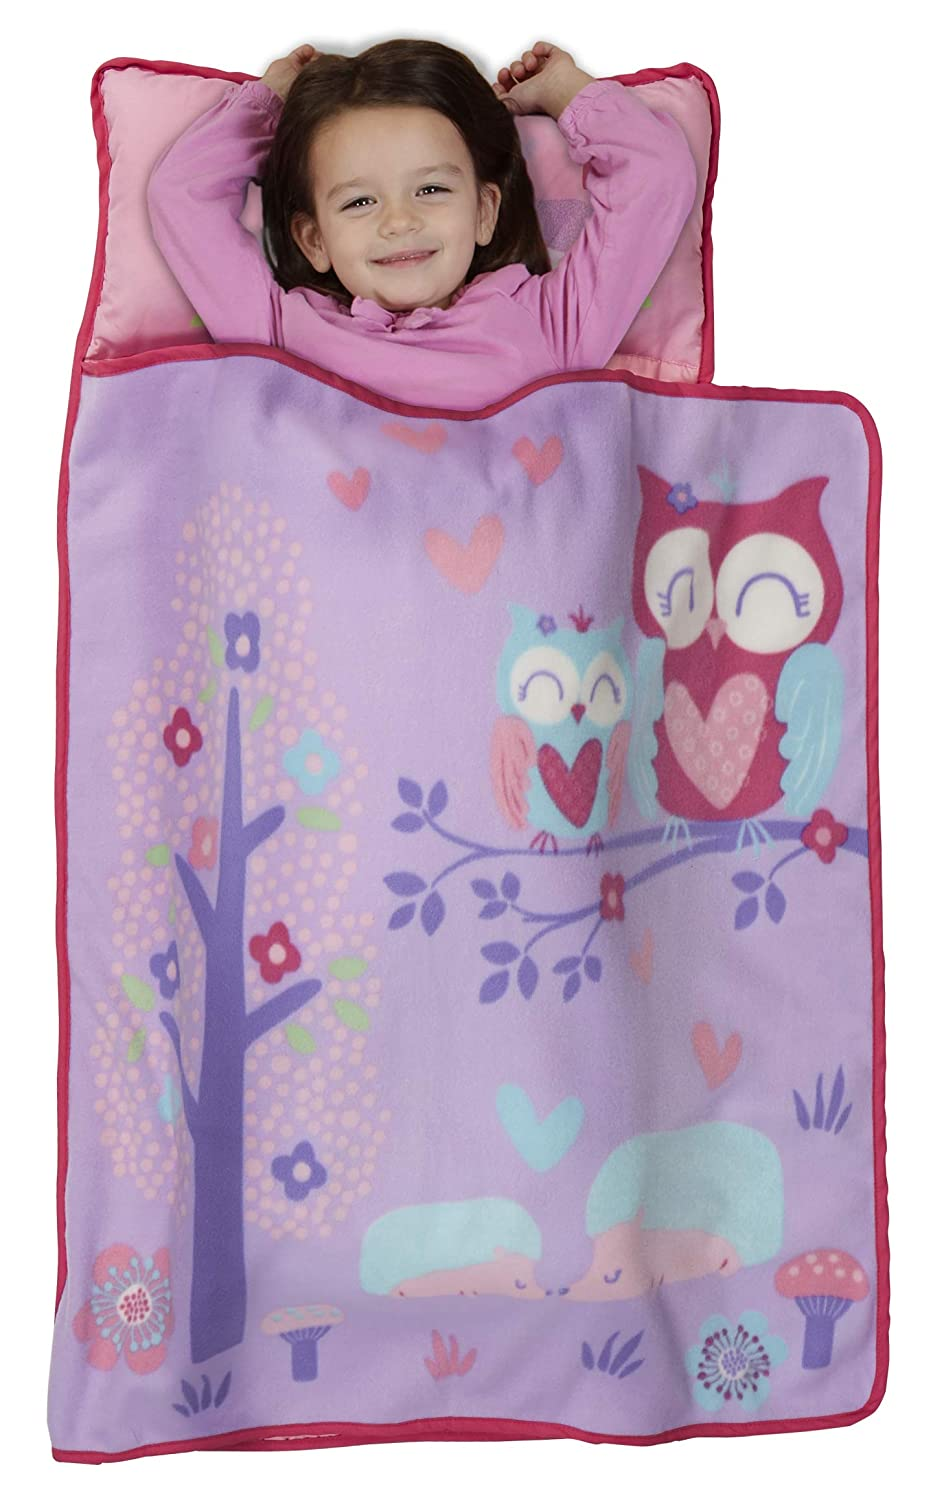 Preschool Great for Girls Sleeping at Daycare Includes Pillow and Fleece Blanket Baby Boom Pink Princess Kids Nap Mat Set or Kindergarten Fits Napping Toddlers or Young Children